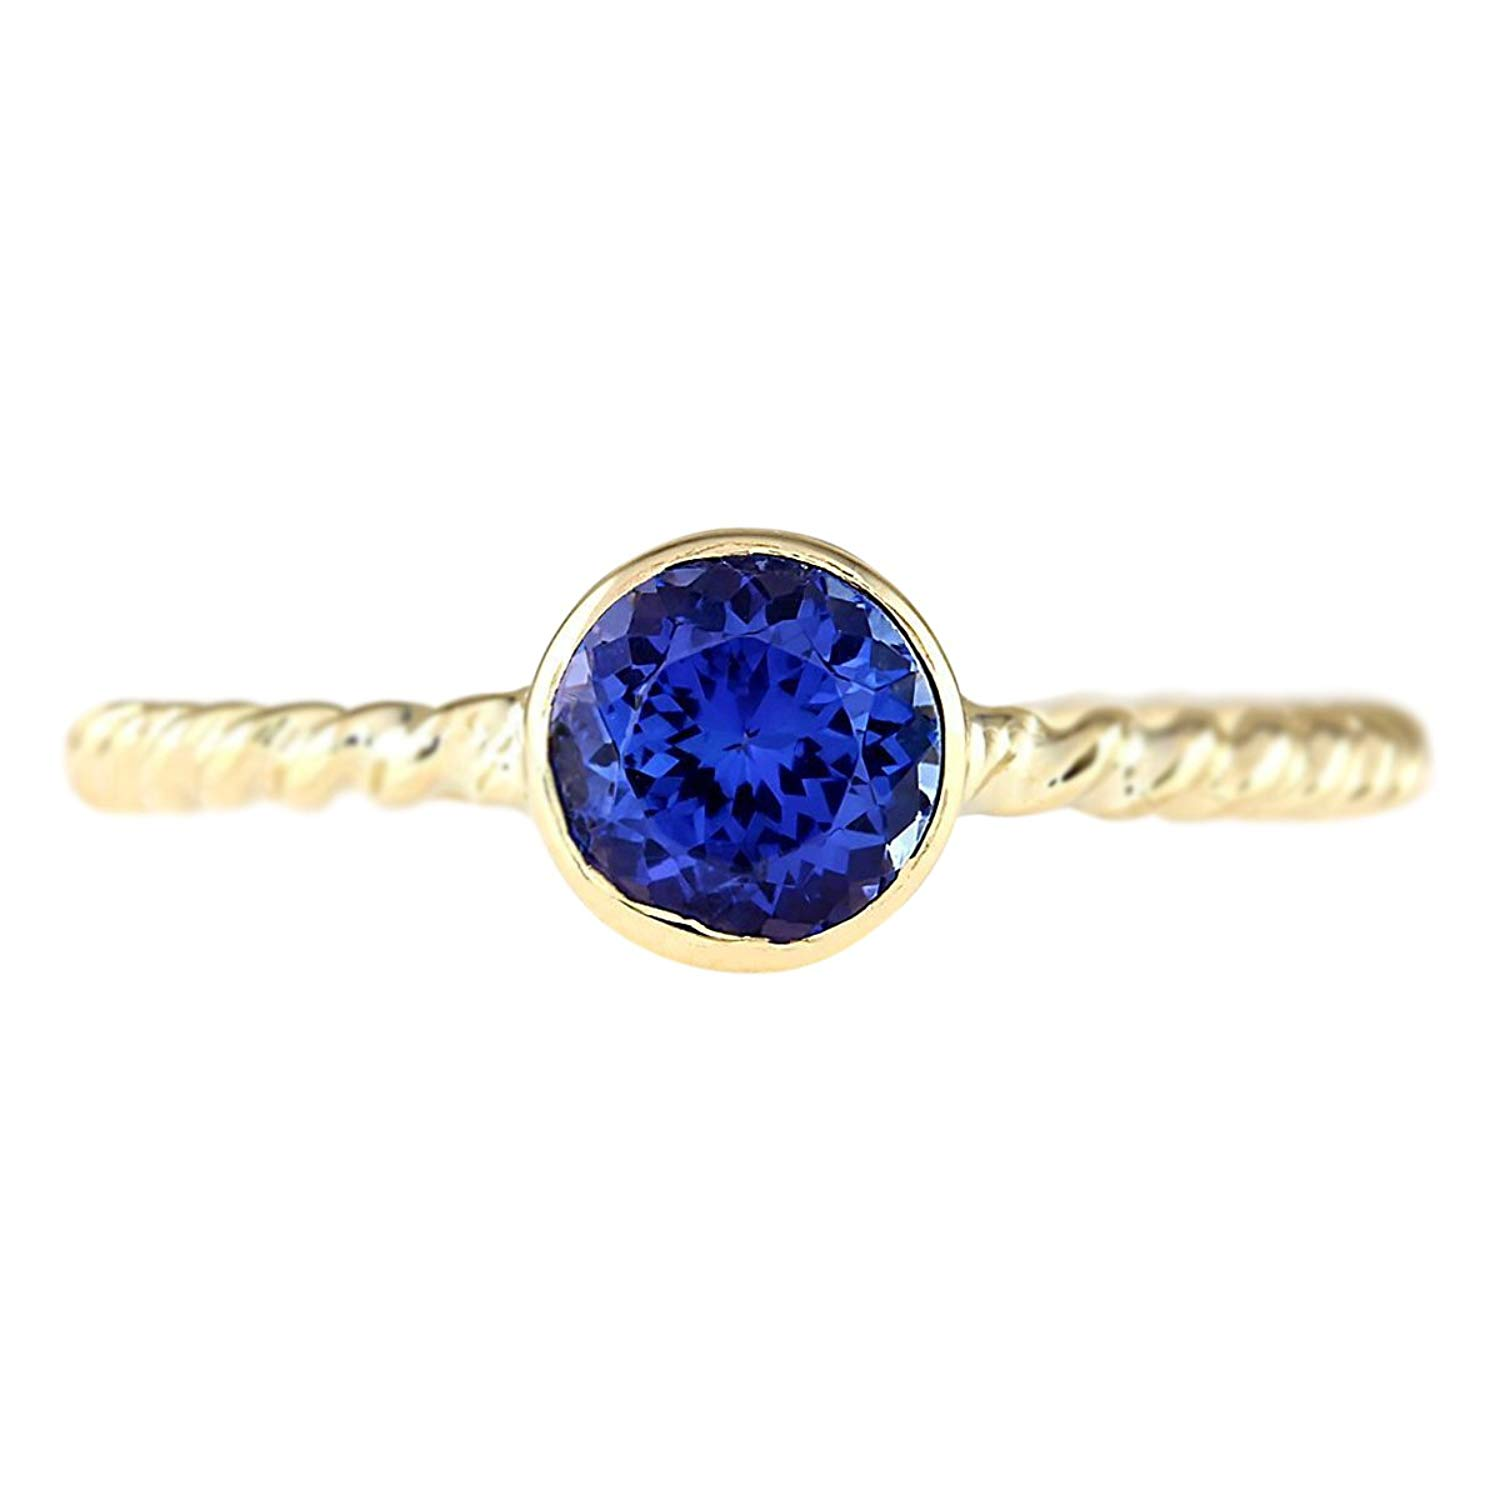 Get Quotations 1 Carat Natural Blue Tanzanite 14k Yellow Gold Solitaire Promise Ring For Women Exclusively Handcrafted In